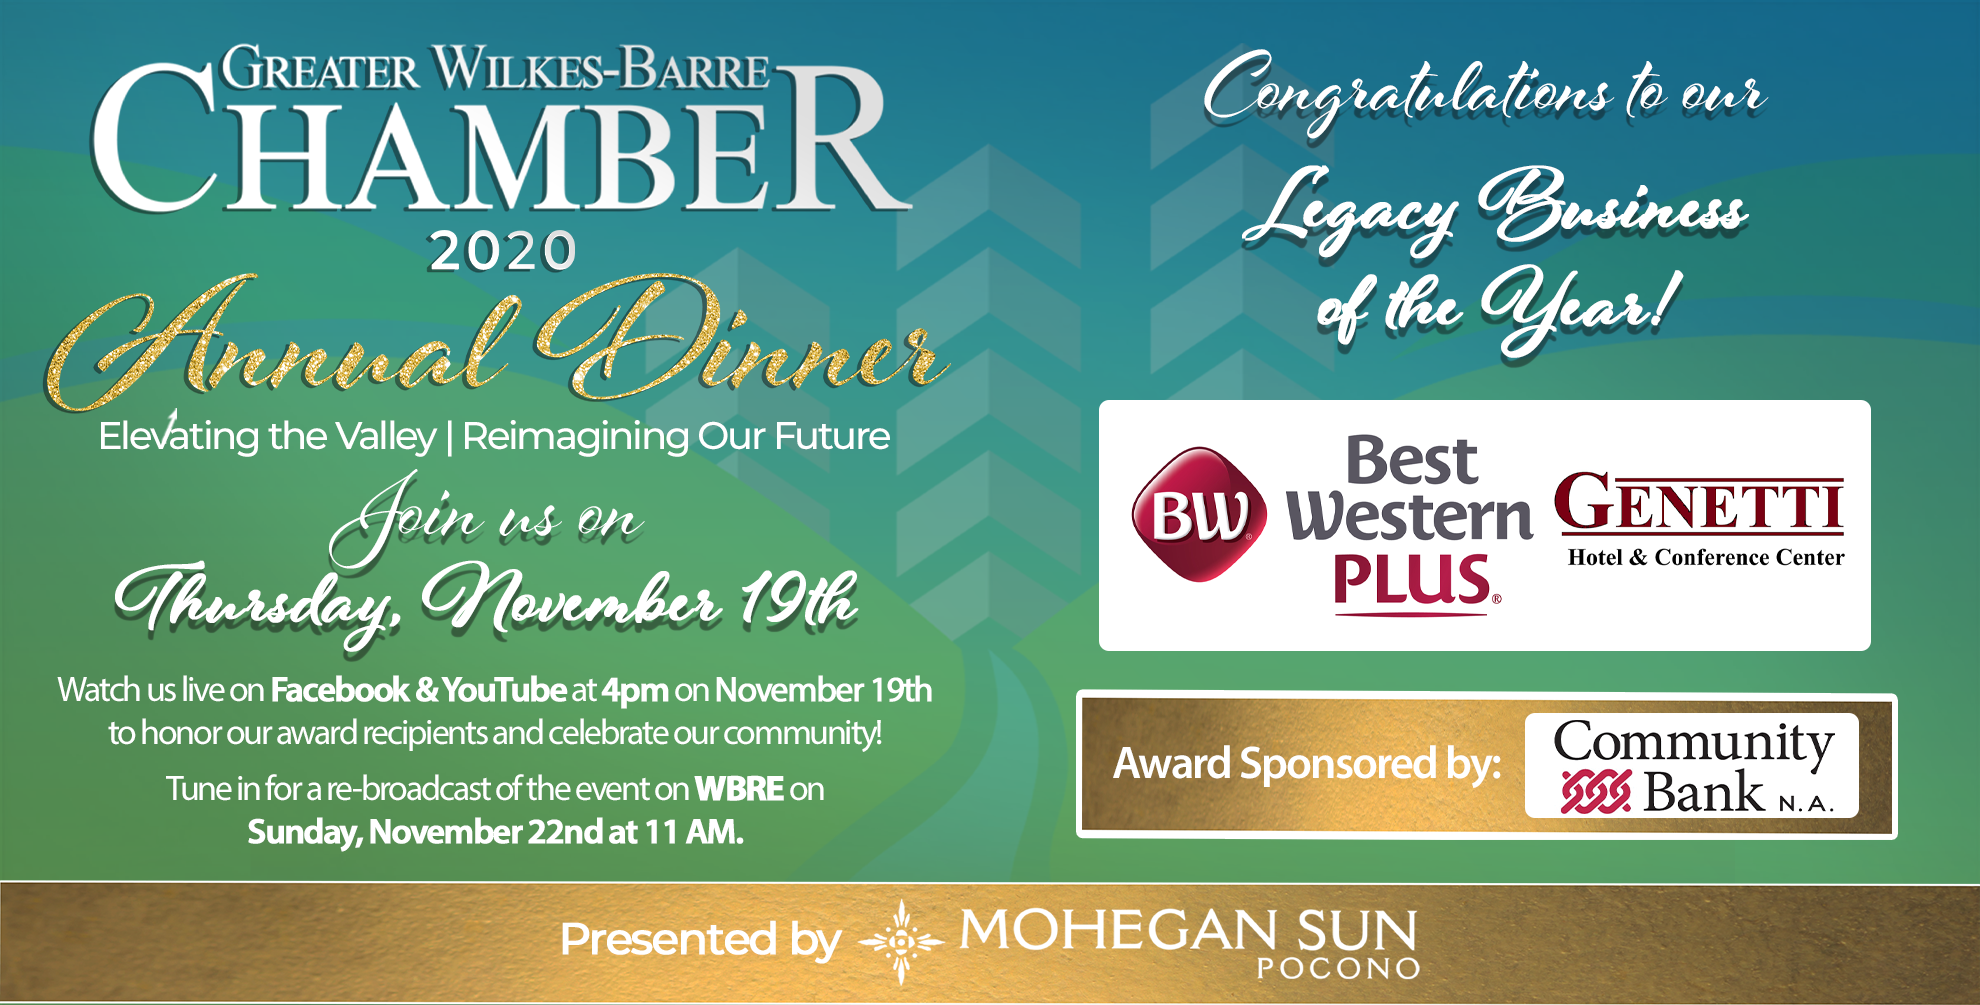 Image for Meet Our 2020 Legacy Business of the Year: Best Western Plus Genetti Hotel